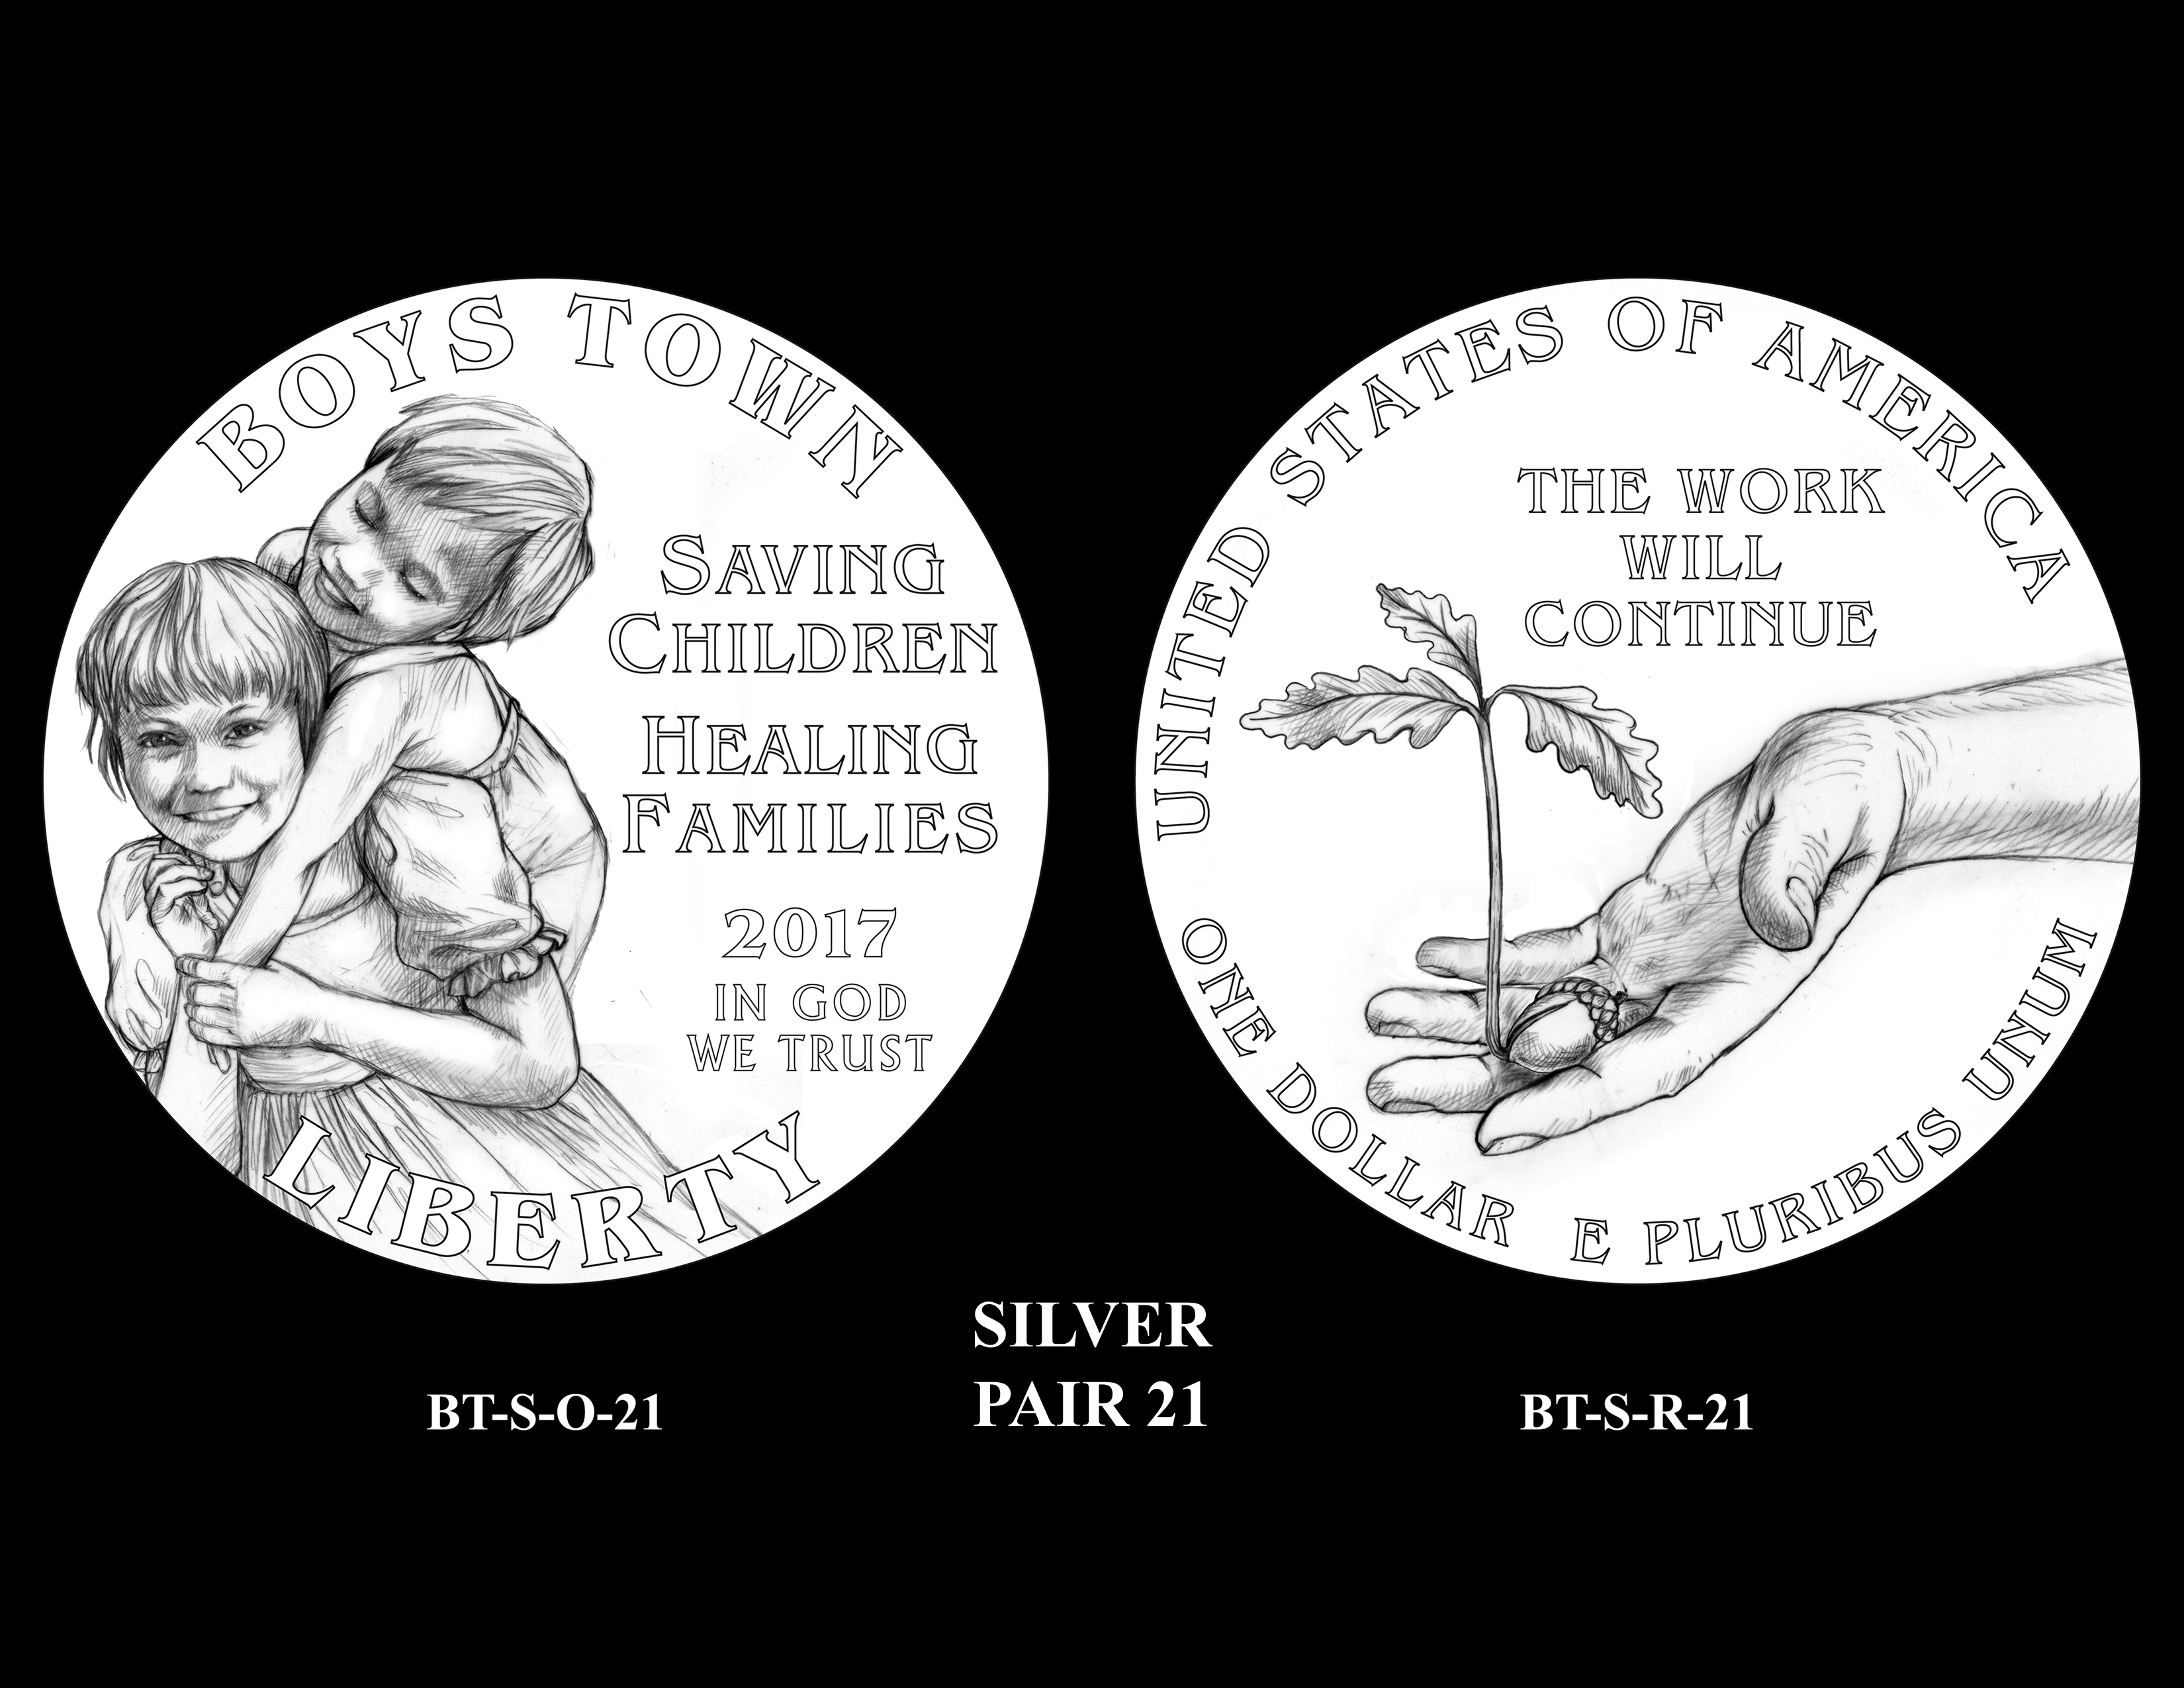 Silver-Pair-21 -- 2017 Boystown Centennial Commemorative Coin  Program